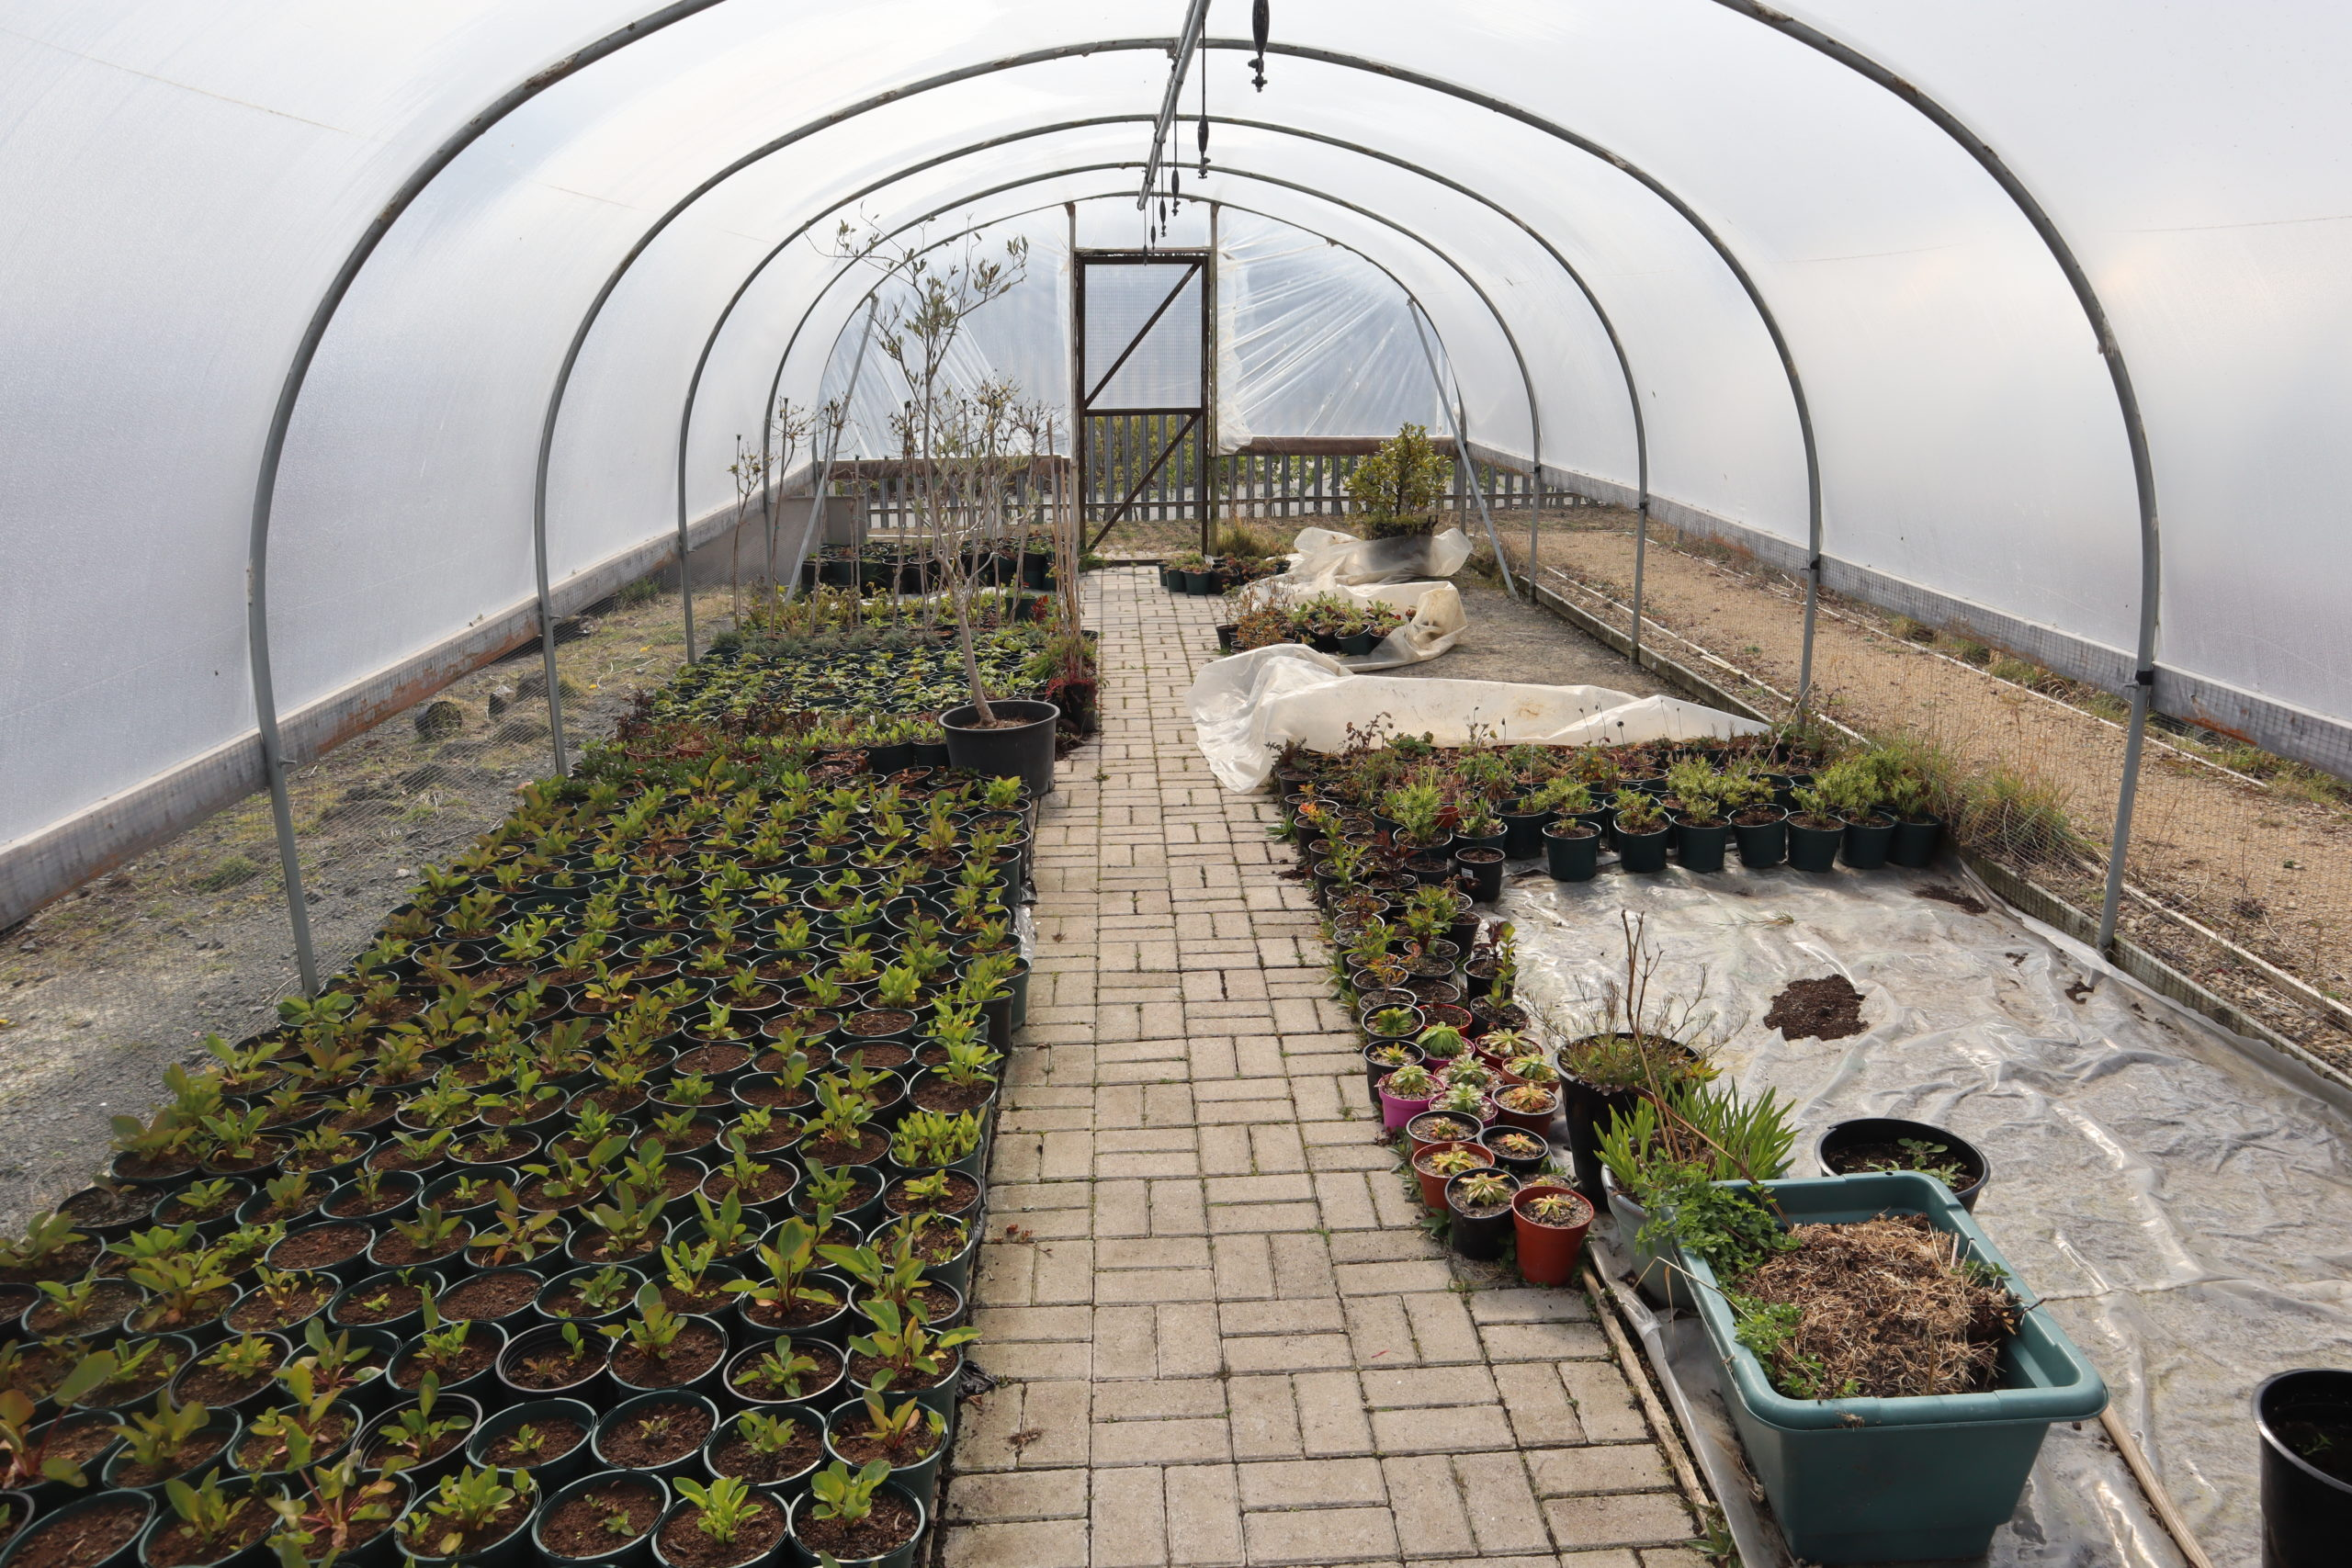 One of the polytunnels at Hopewood Park used by the Occupational Therapy team to grow plants with patients.